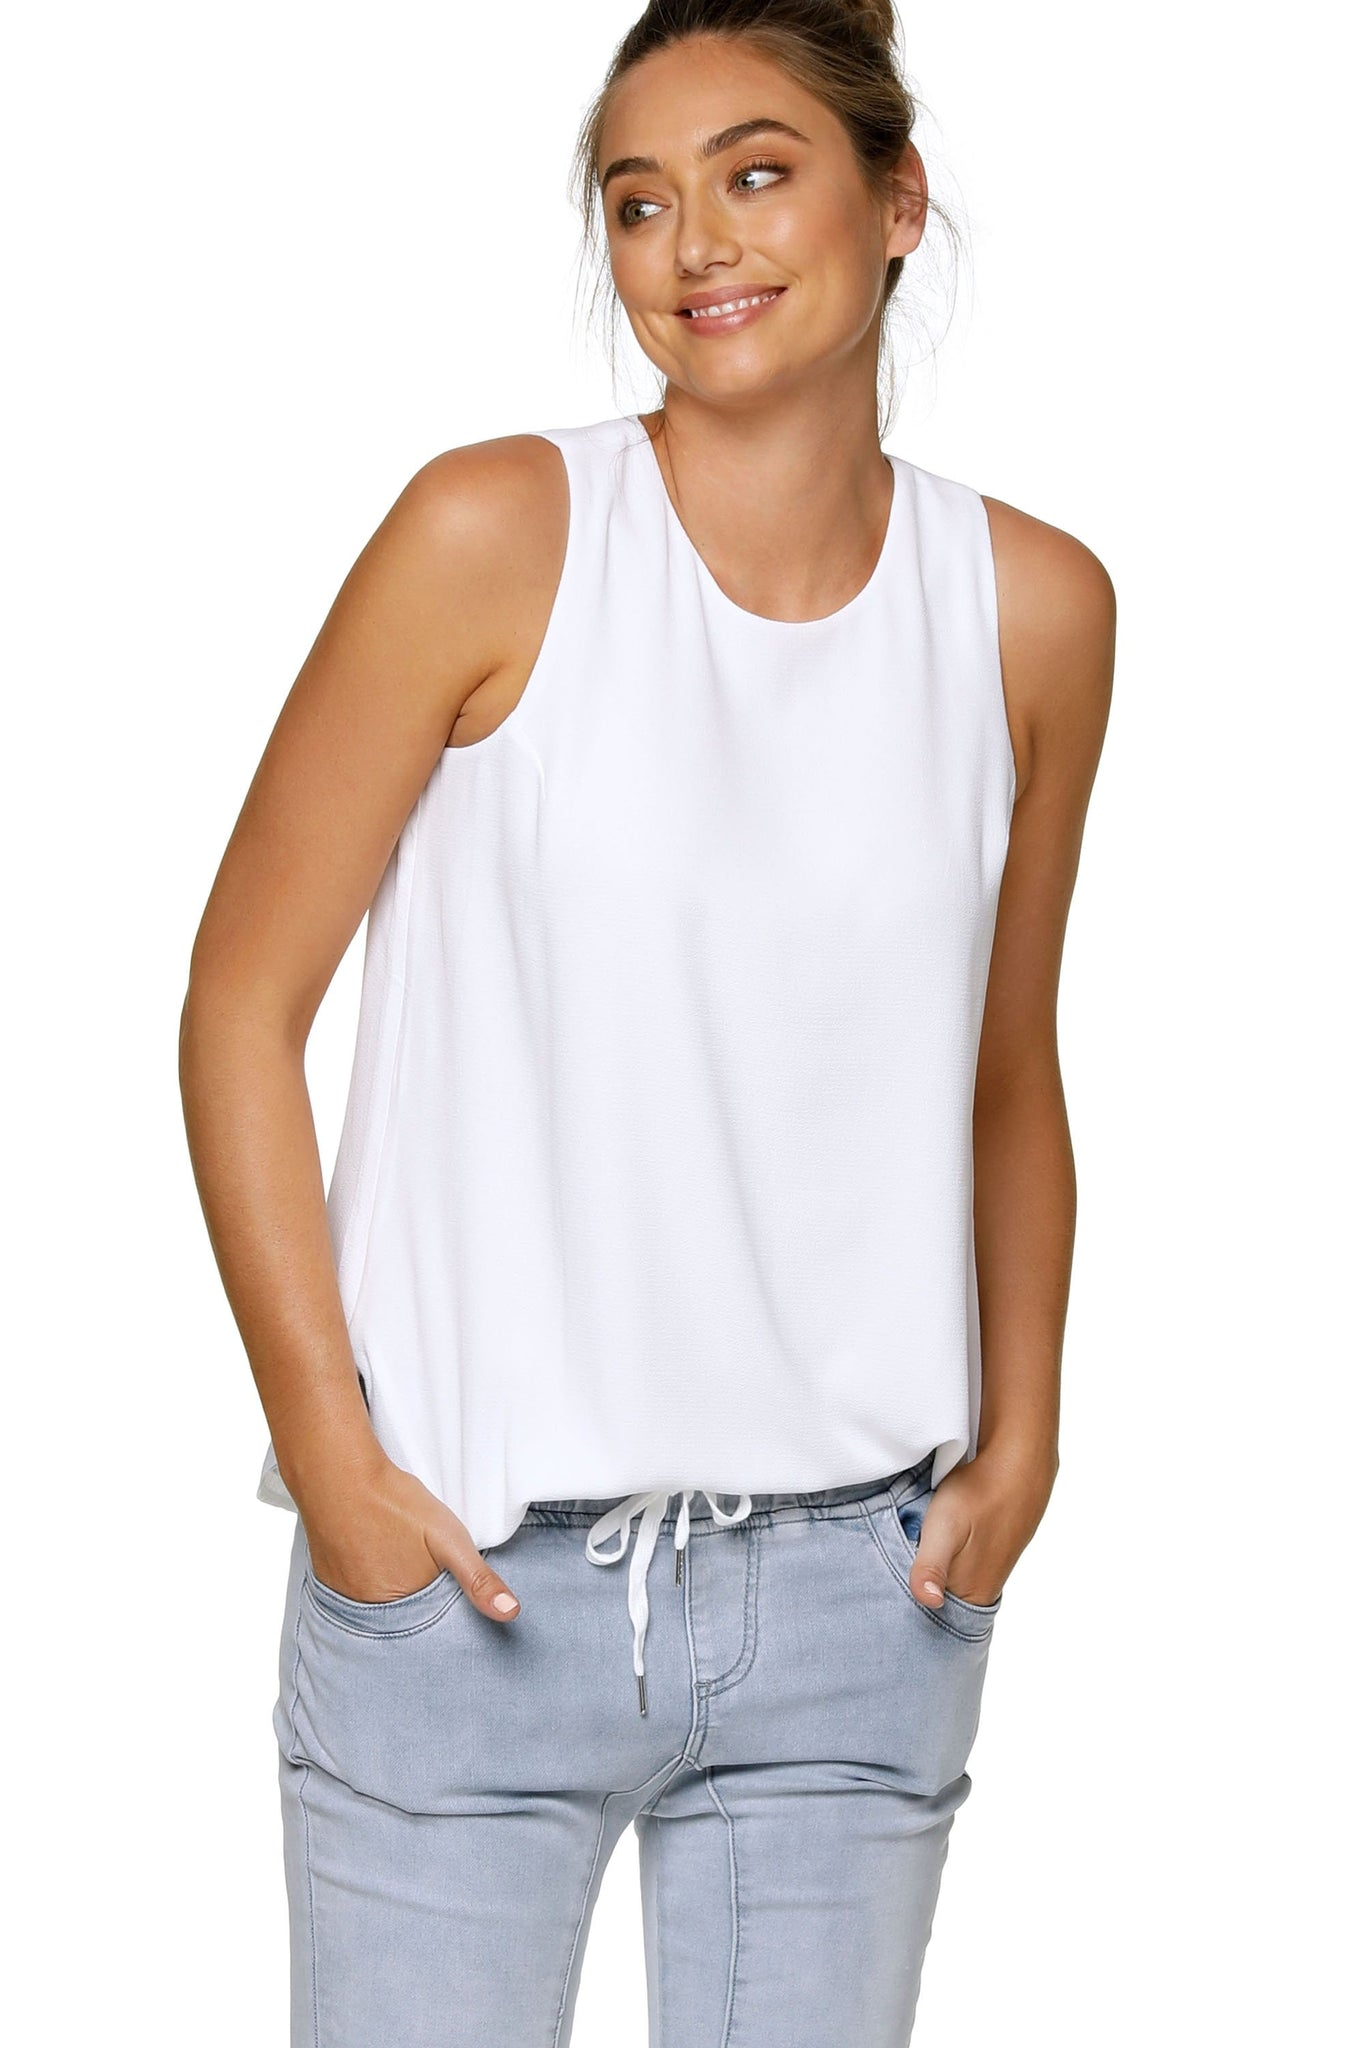 Maternity & Nursing Tank Top - White 11